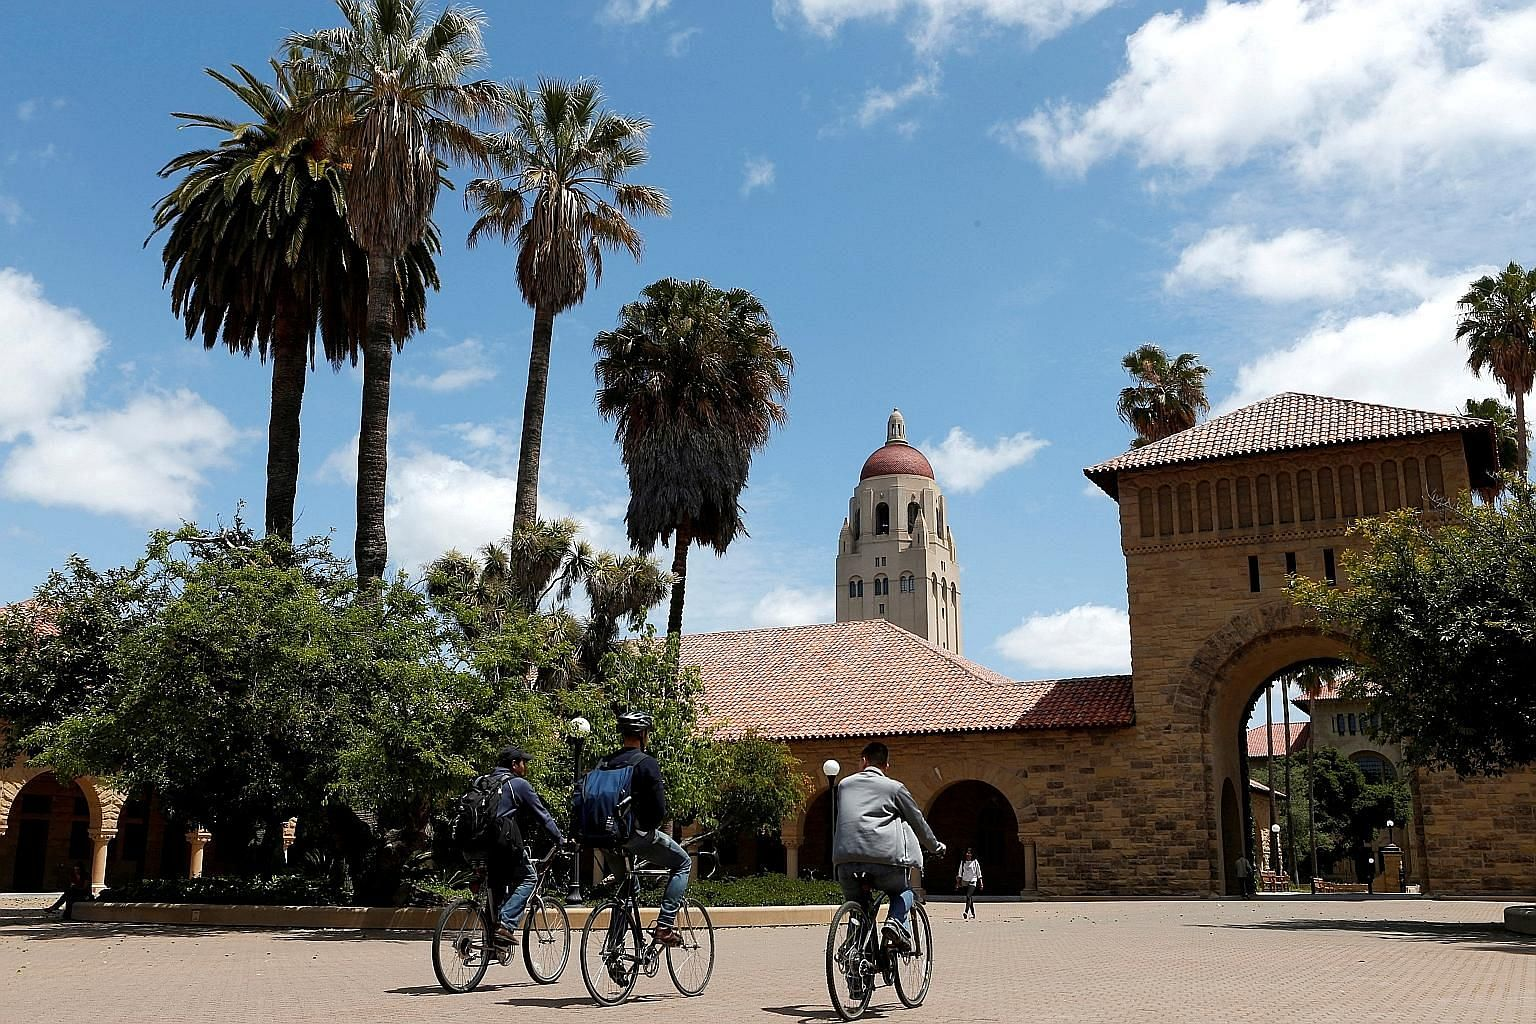 The main quadrangle at Stanford University's campus in Stanford, California. The US university is famous for producing entrepreneurs and innovators.